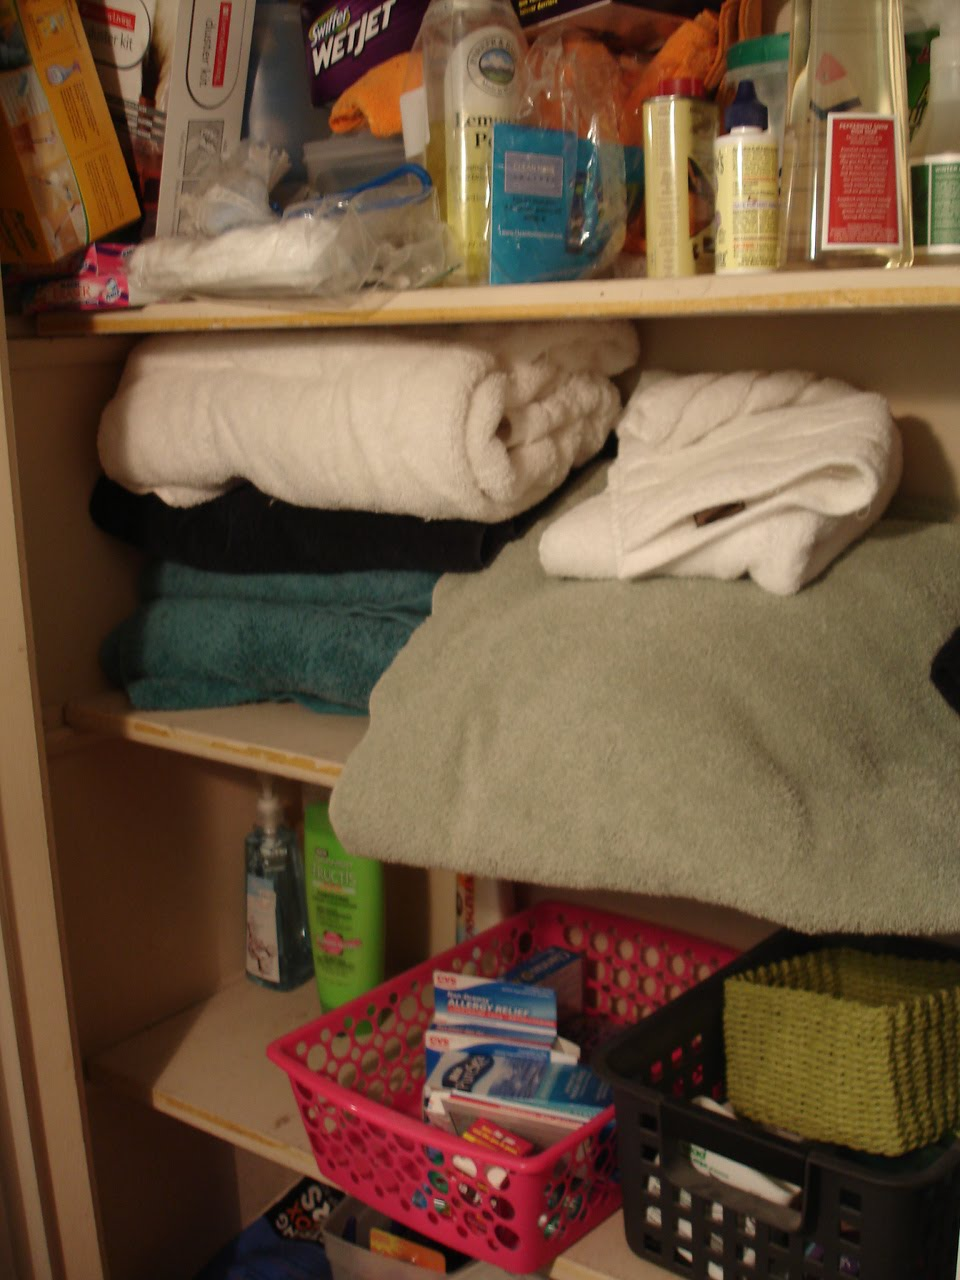 My Linen Closet Is Driving Me Crazy Towels Are Falling Off The Shelves There No Room For Toilet Paper Some Rarely Used But Necessary Cleaning Supplies